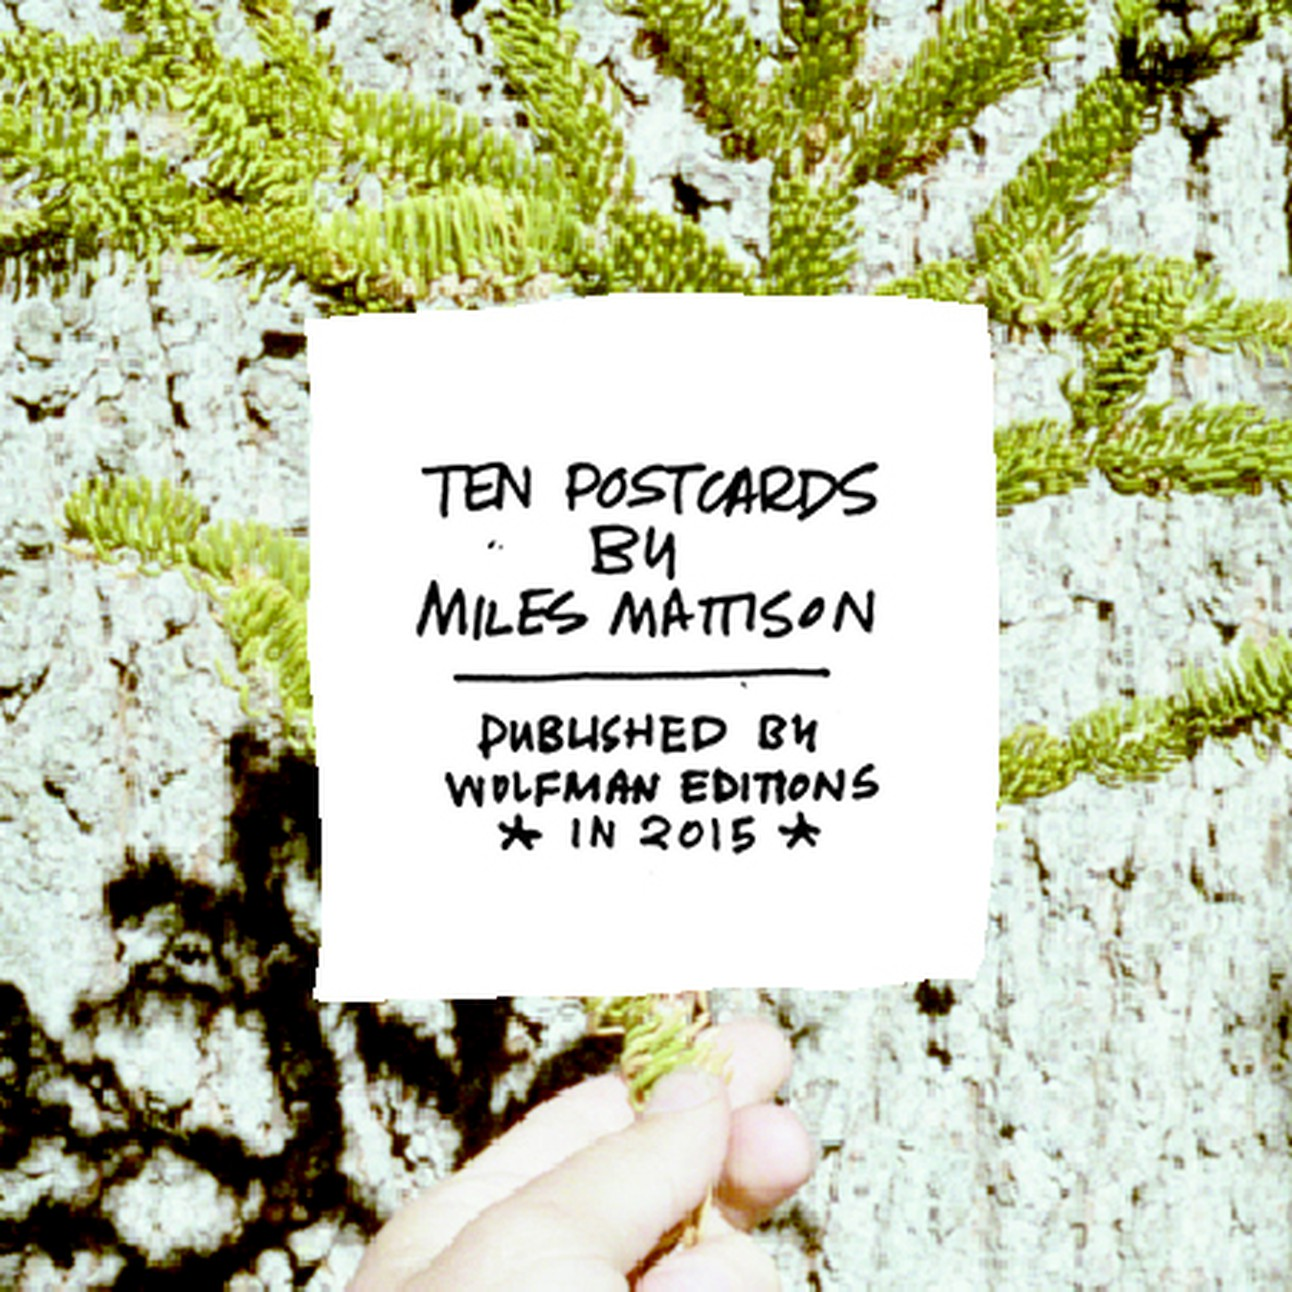 Ten Postcards  Miles Mattison  $12.00  Ten photographic postcards of connective technology and forces, with hand-drawn labels, and a short essay by the artist